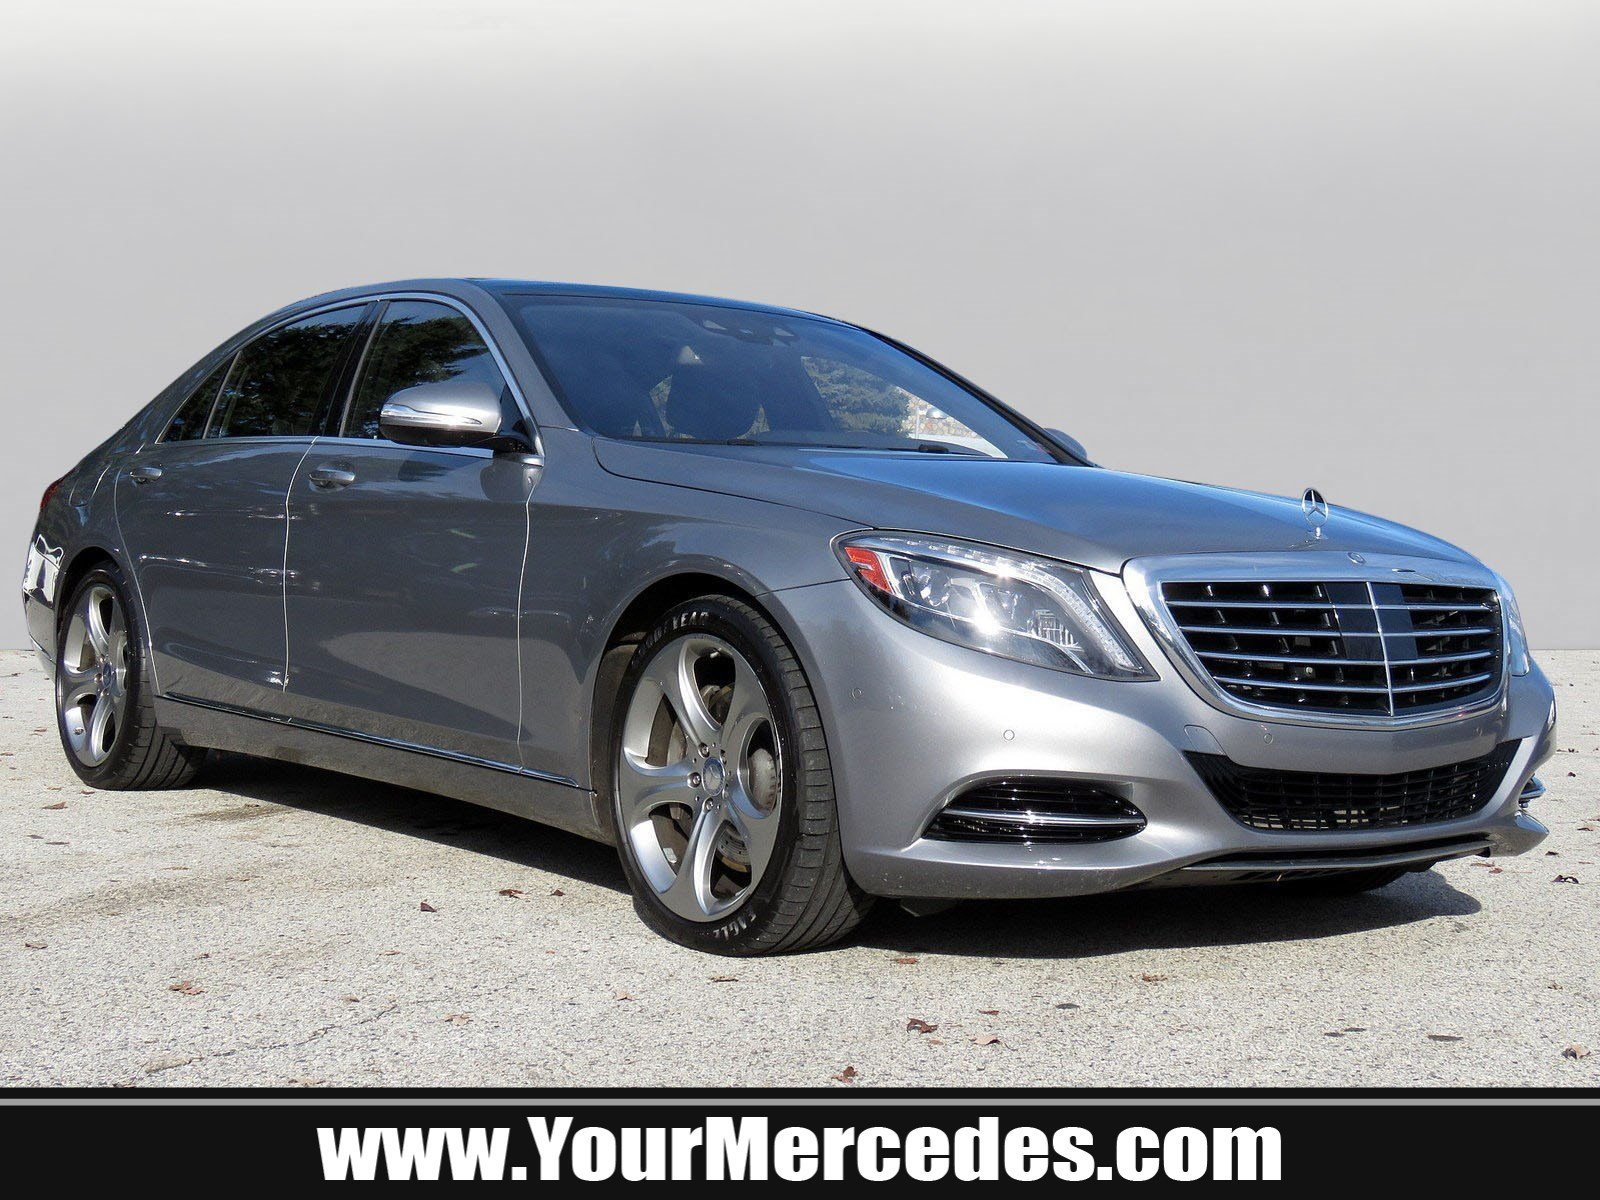 Certified Pre Owned 2015 Mercedes Benz S Class S 550 4dr Car in Egg